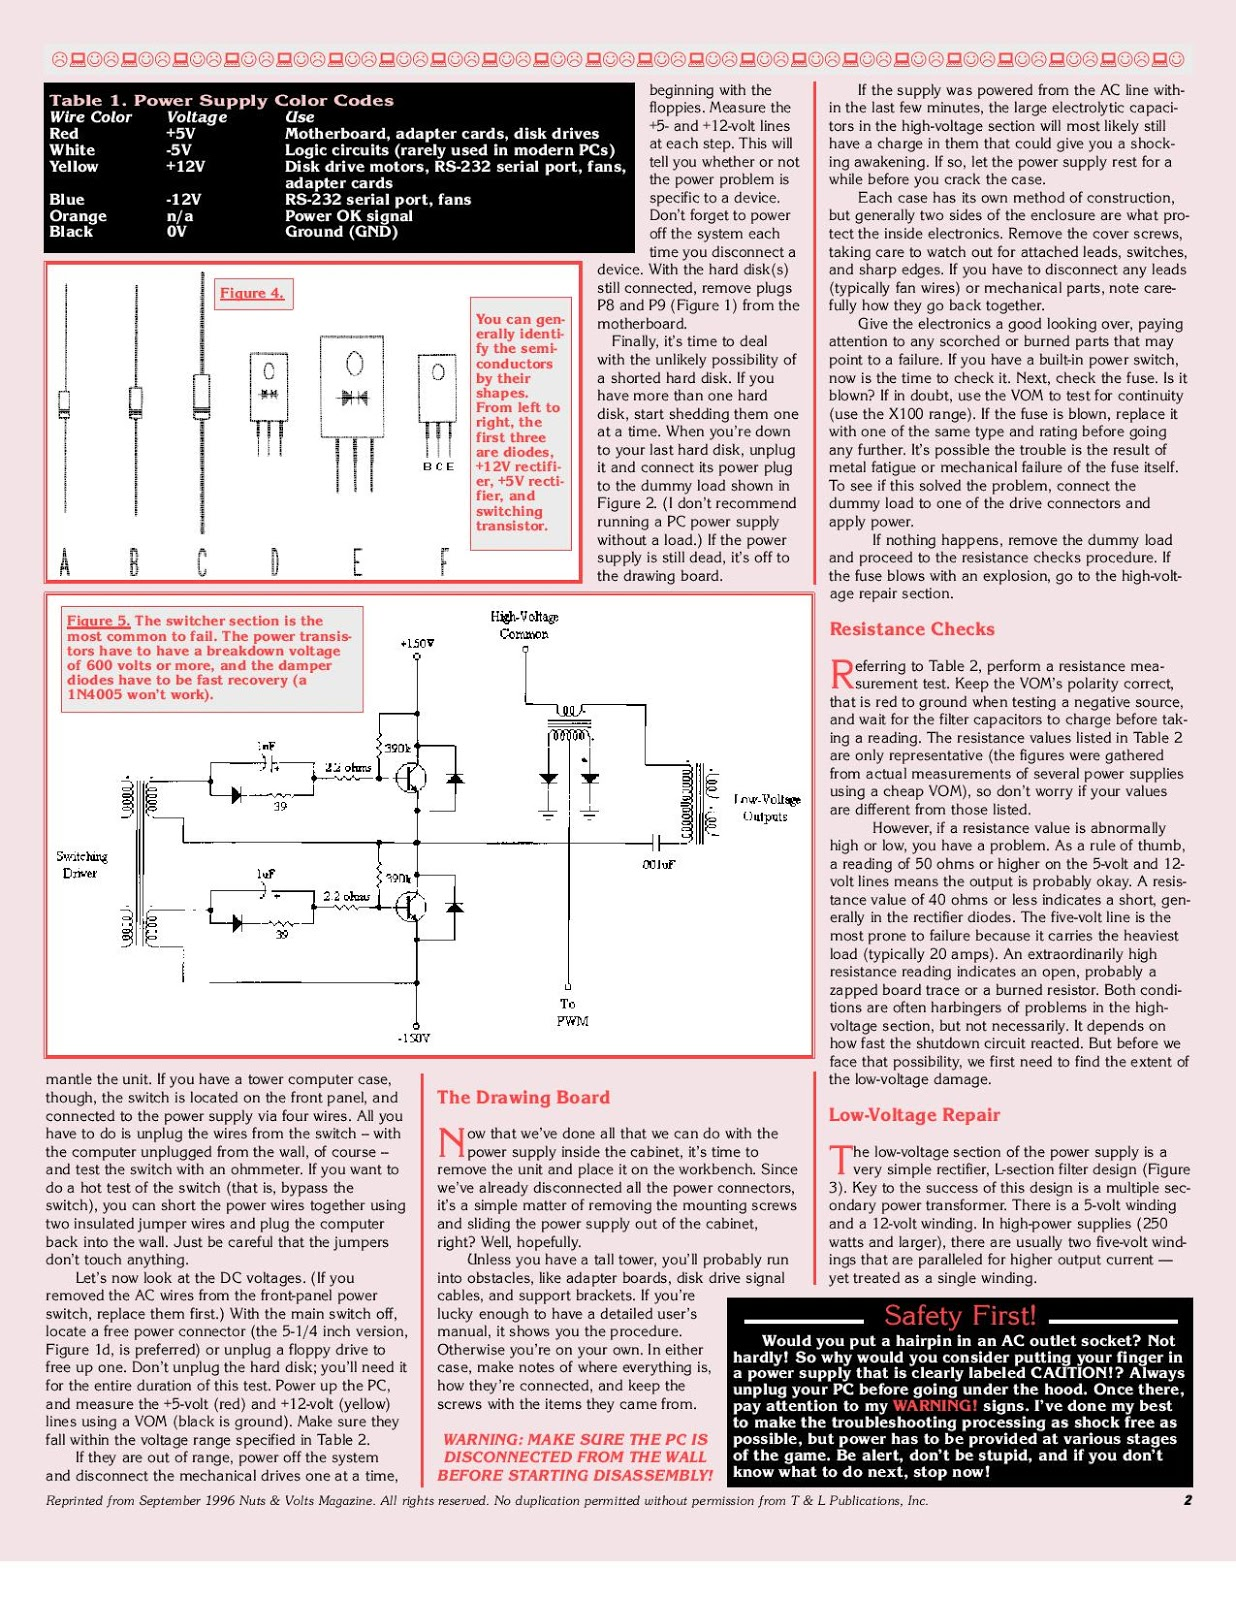 PSU (Power Supply Unit) Circuit Board Diagram and Repair Guide ...